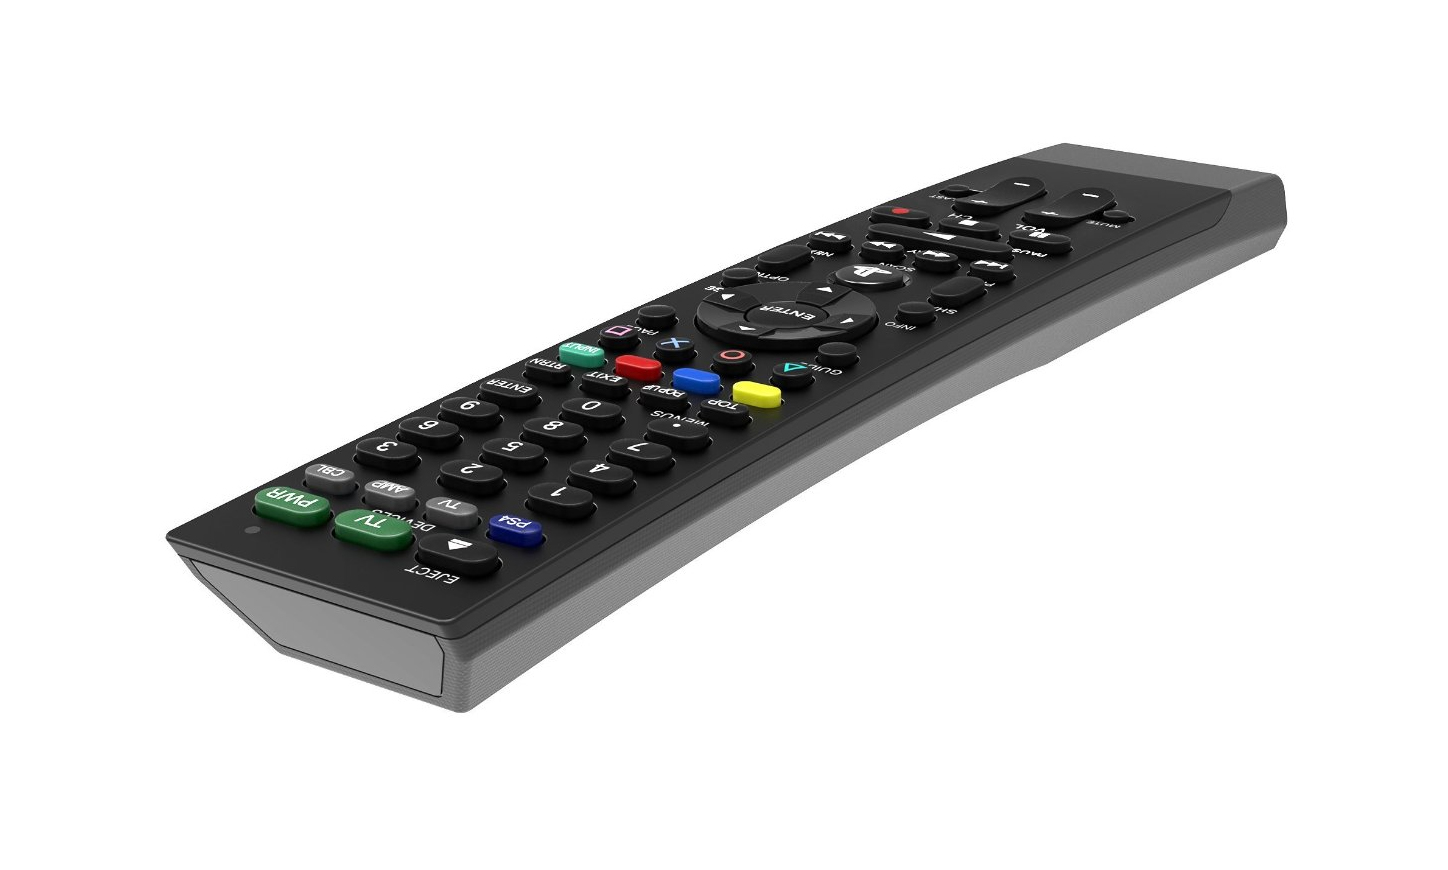 PDP Universal Media Remote for PS4 front